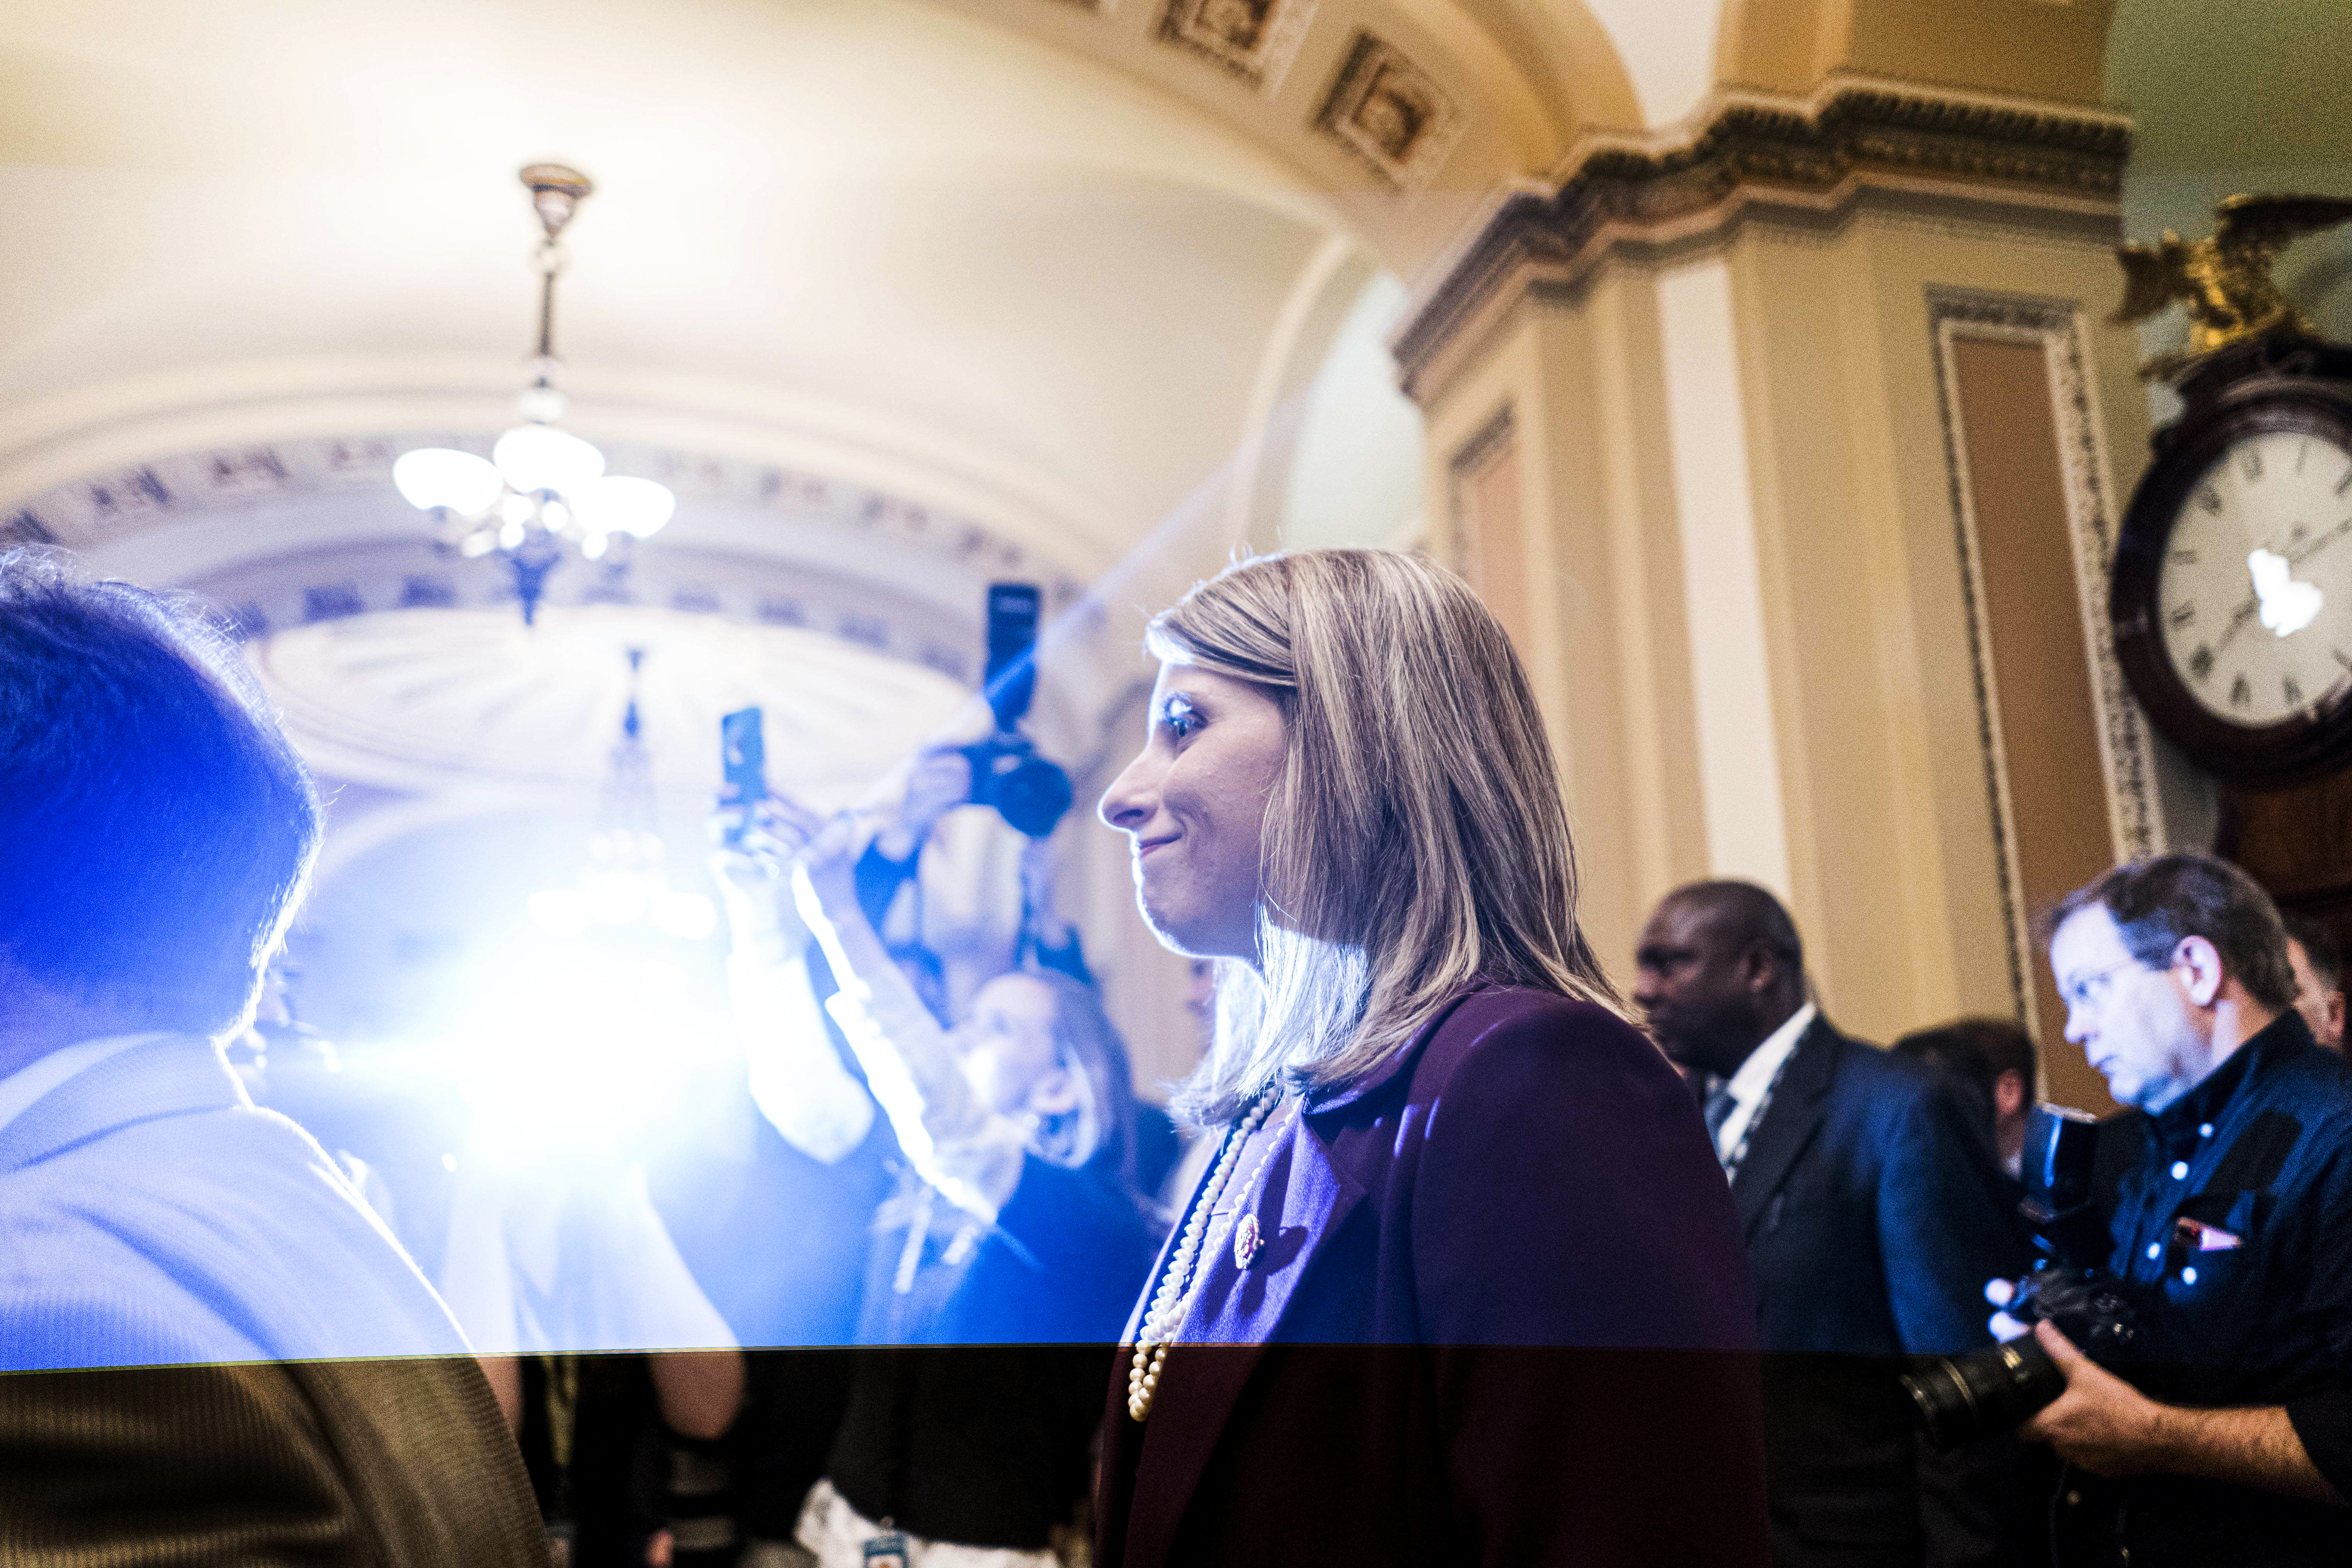 Representative Katie Hill surrounded by bright lights and members of the press.